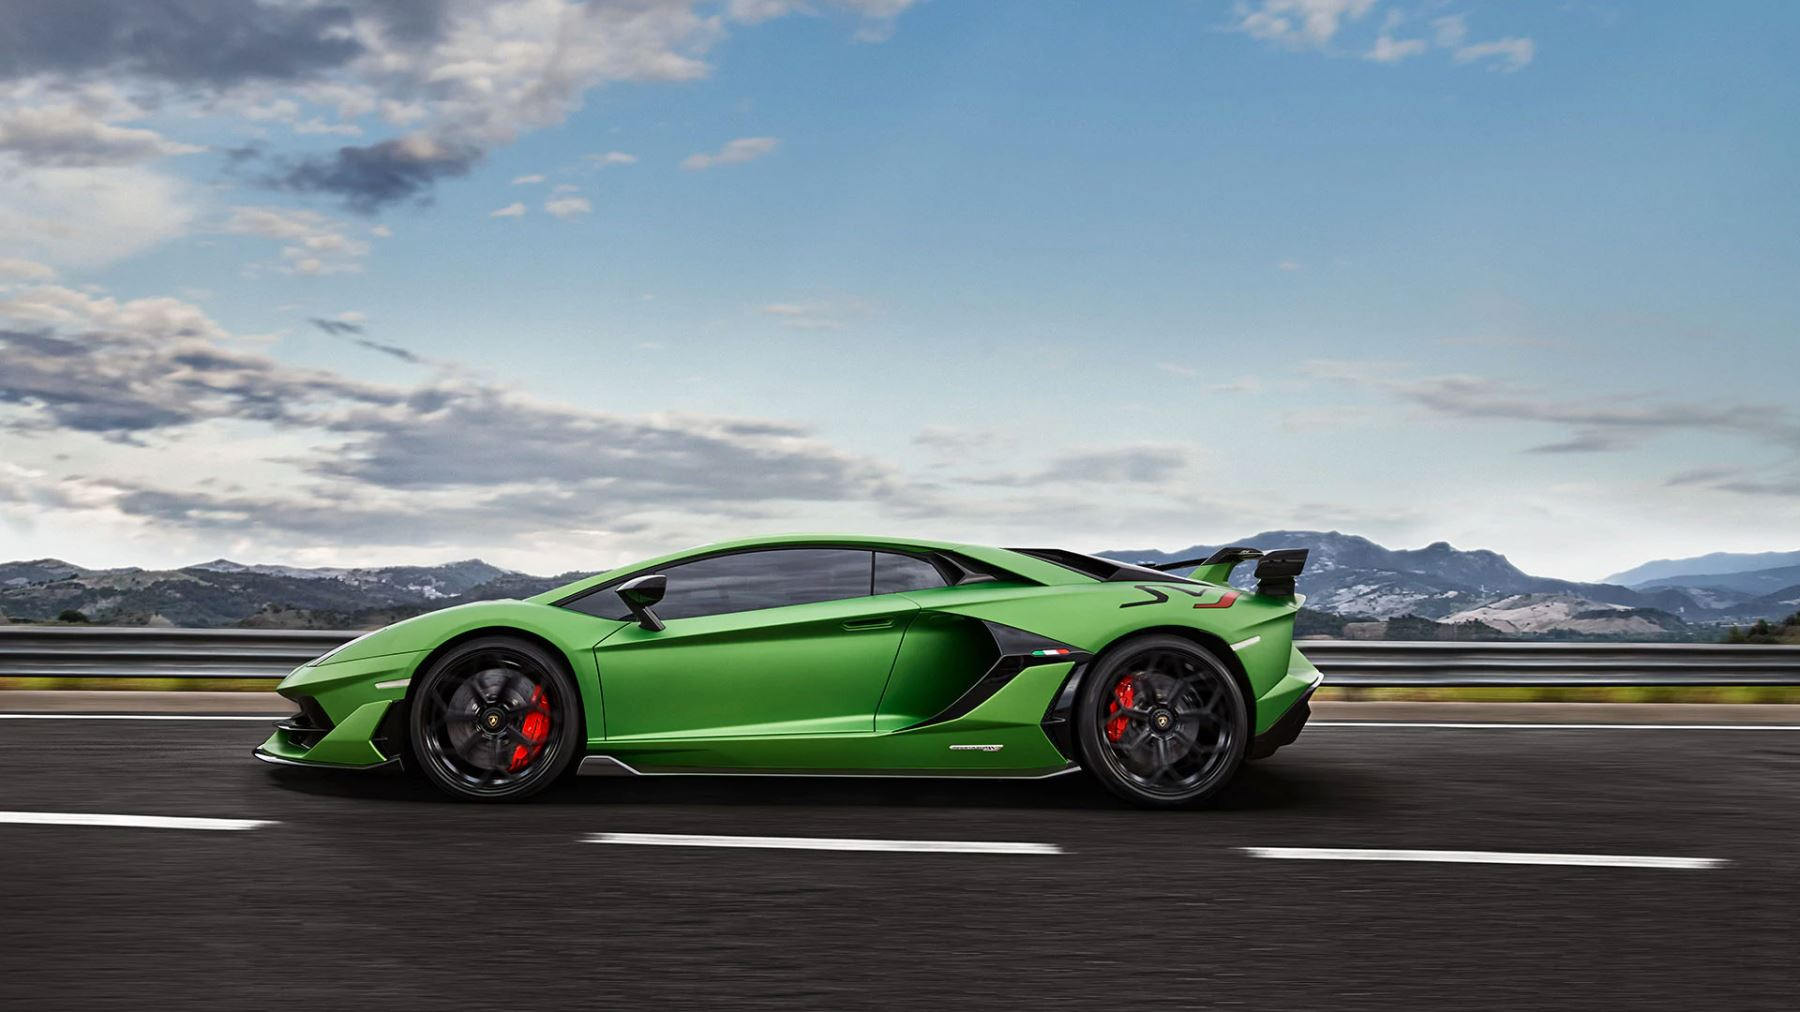 Lamborghini Aventador SVJ Coupe - Real Emotions Shape The Future image 1